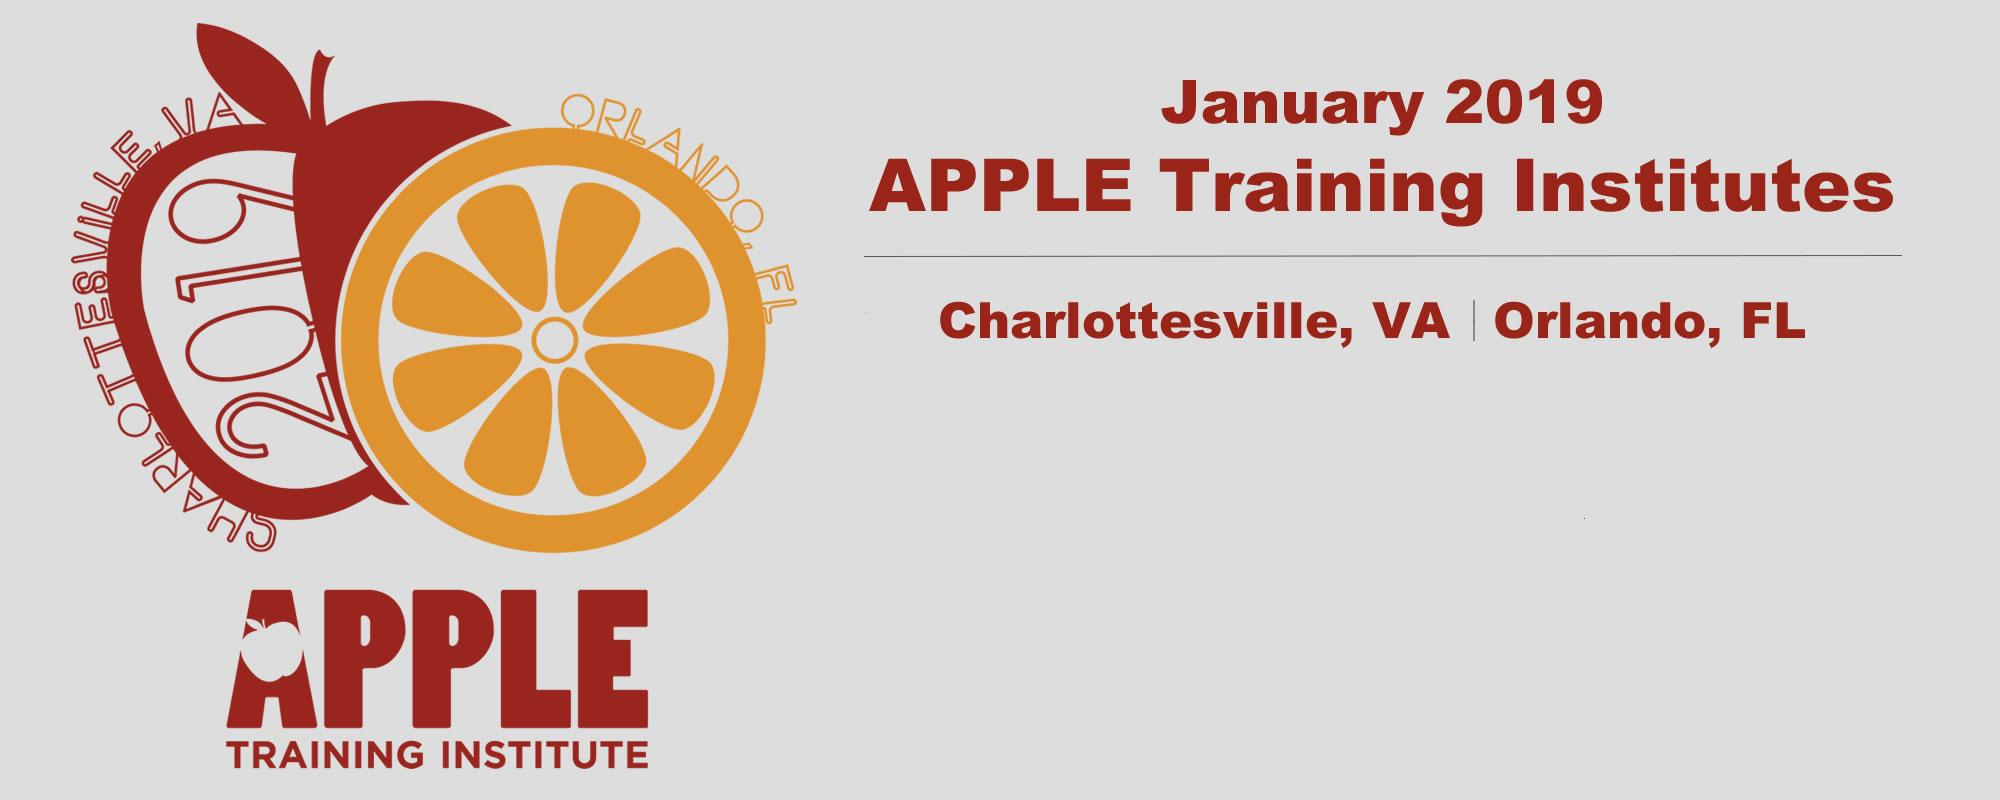 Apple training institute announcement image